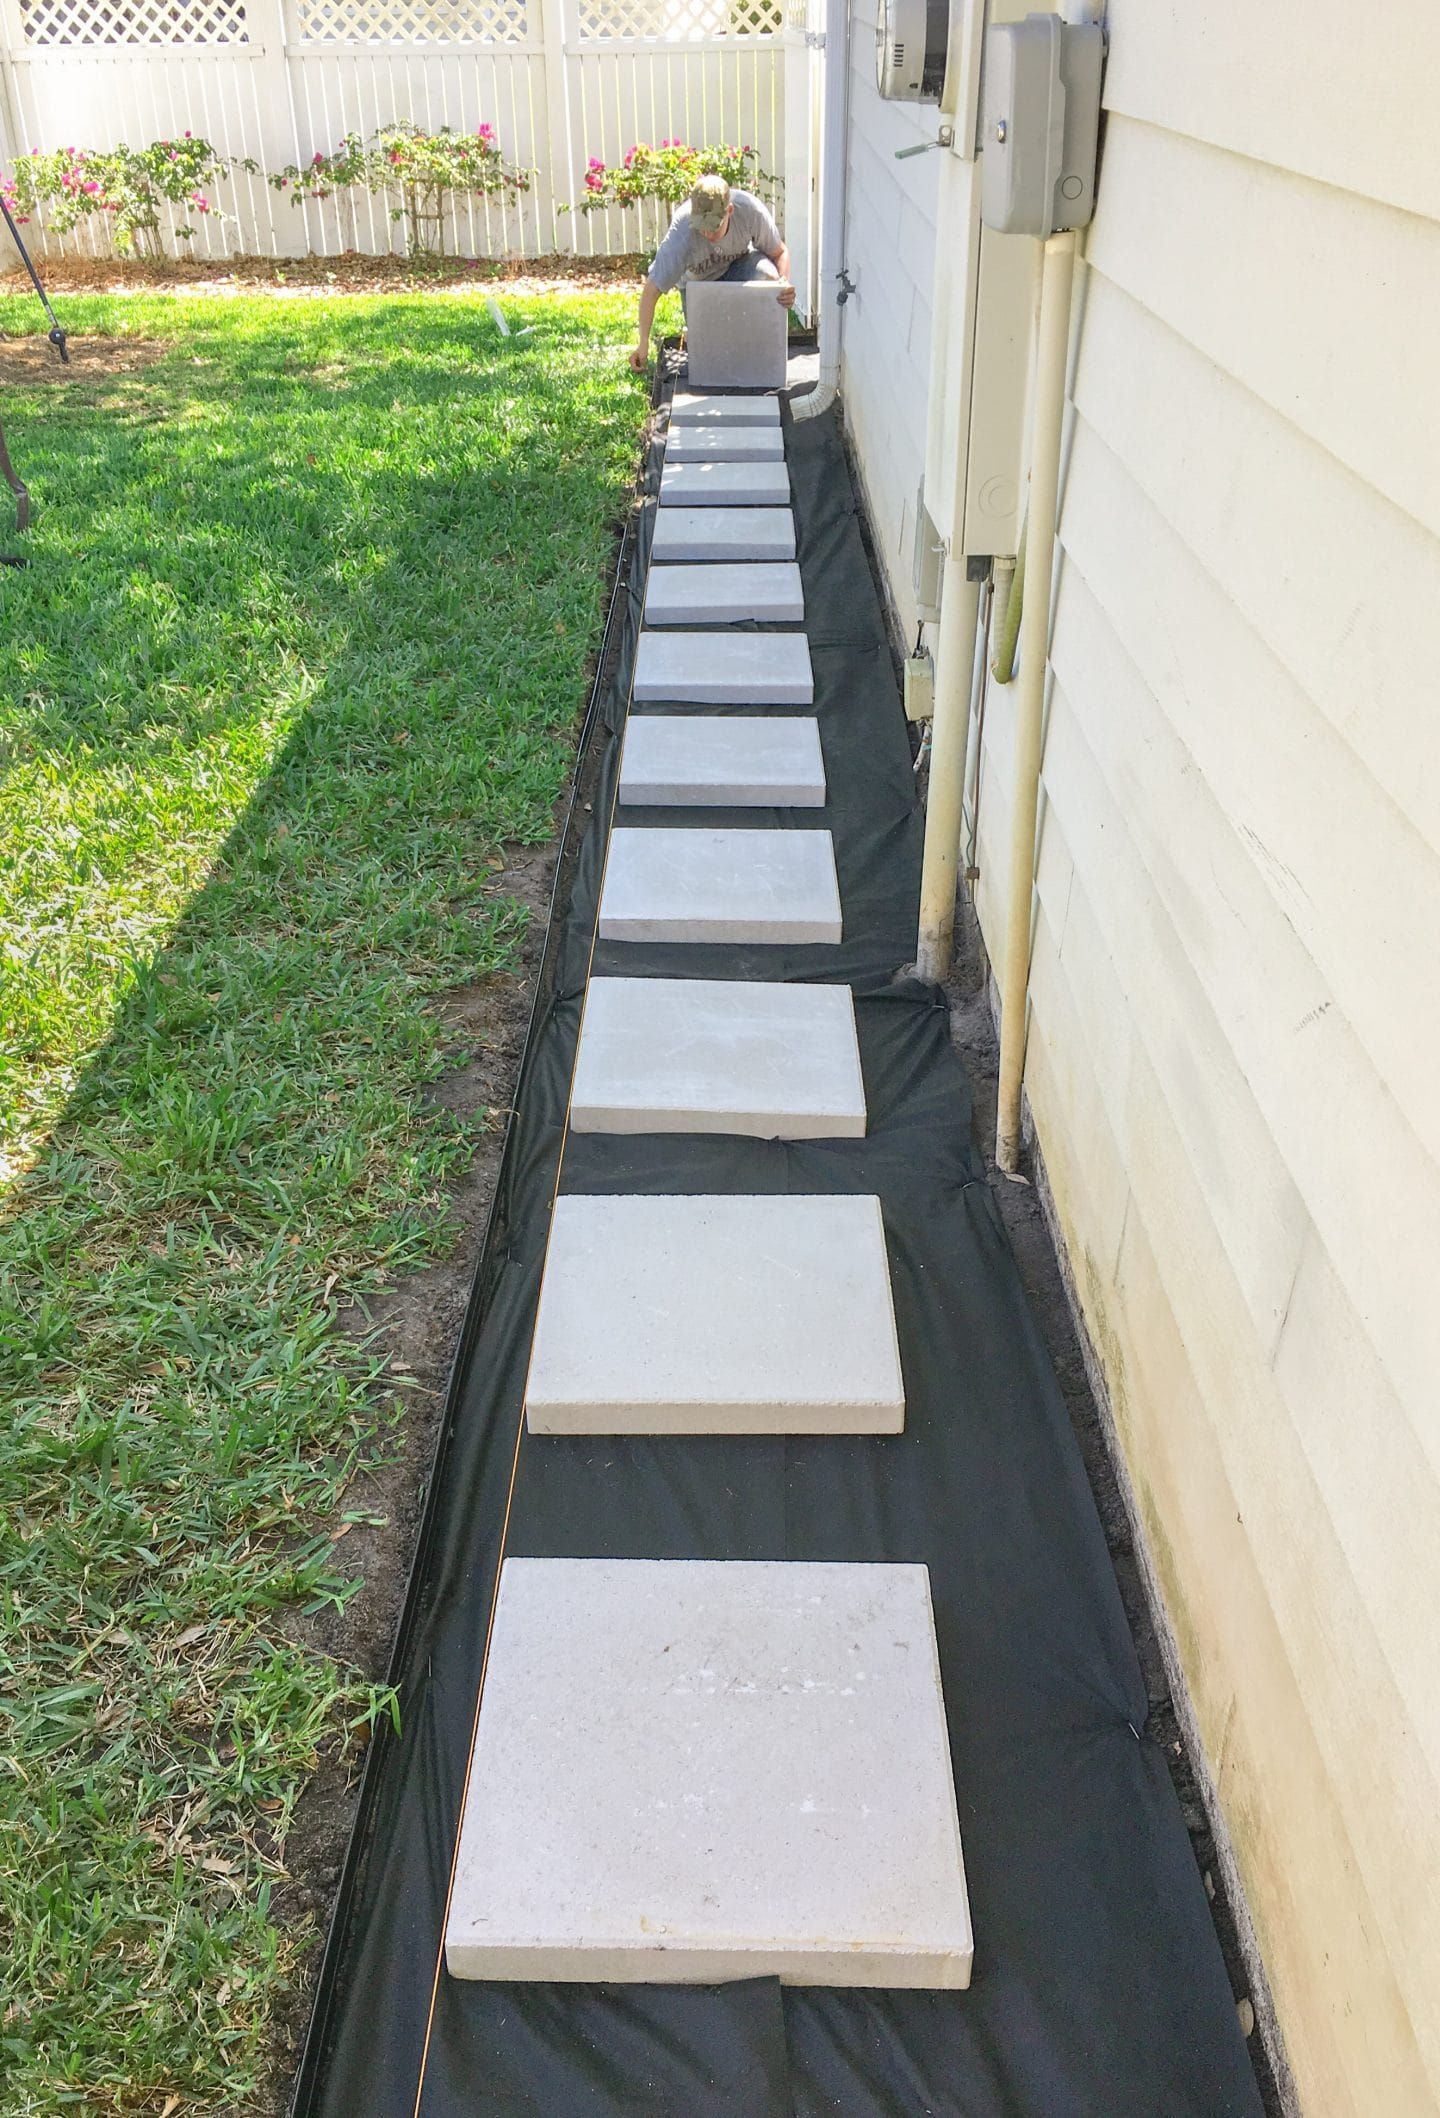 Building the Paver Patio #backyardpatiodesigns